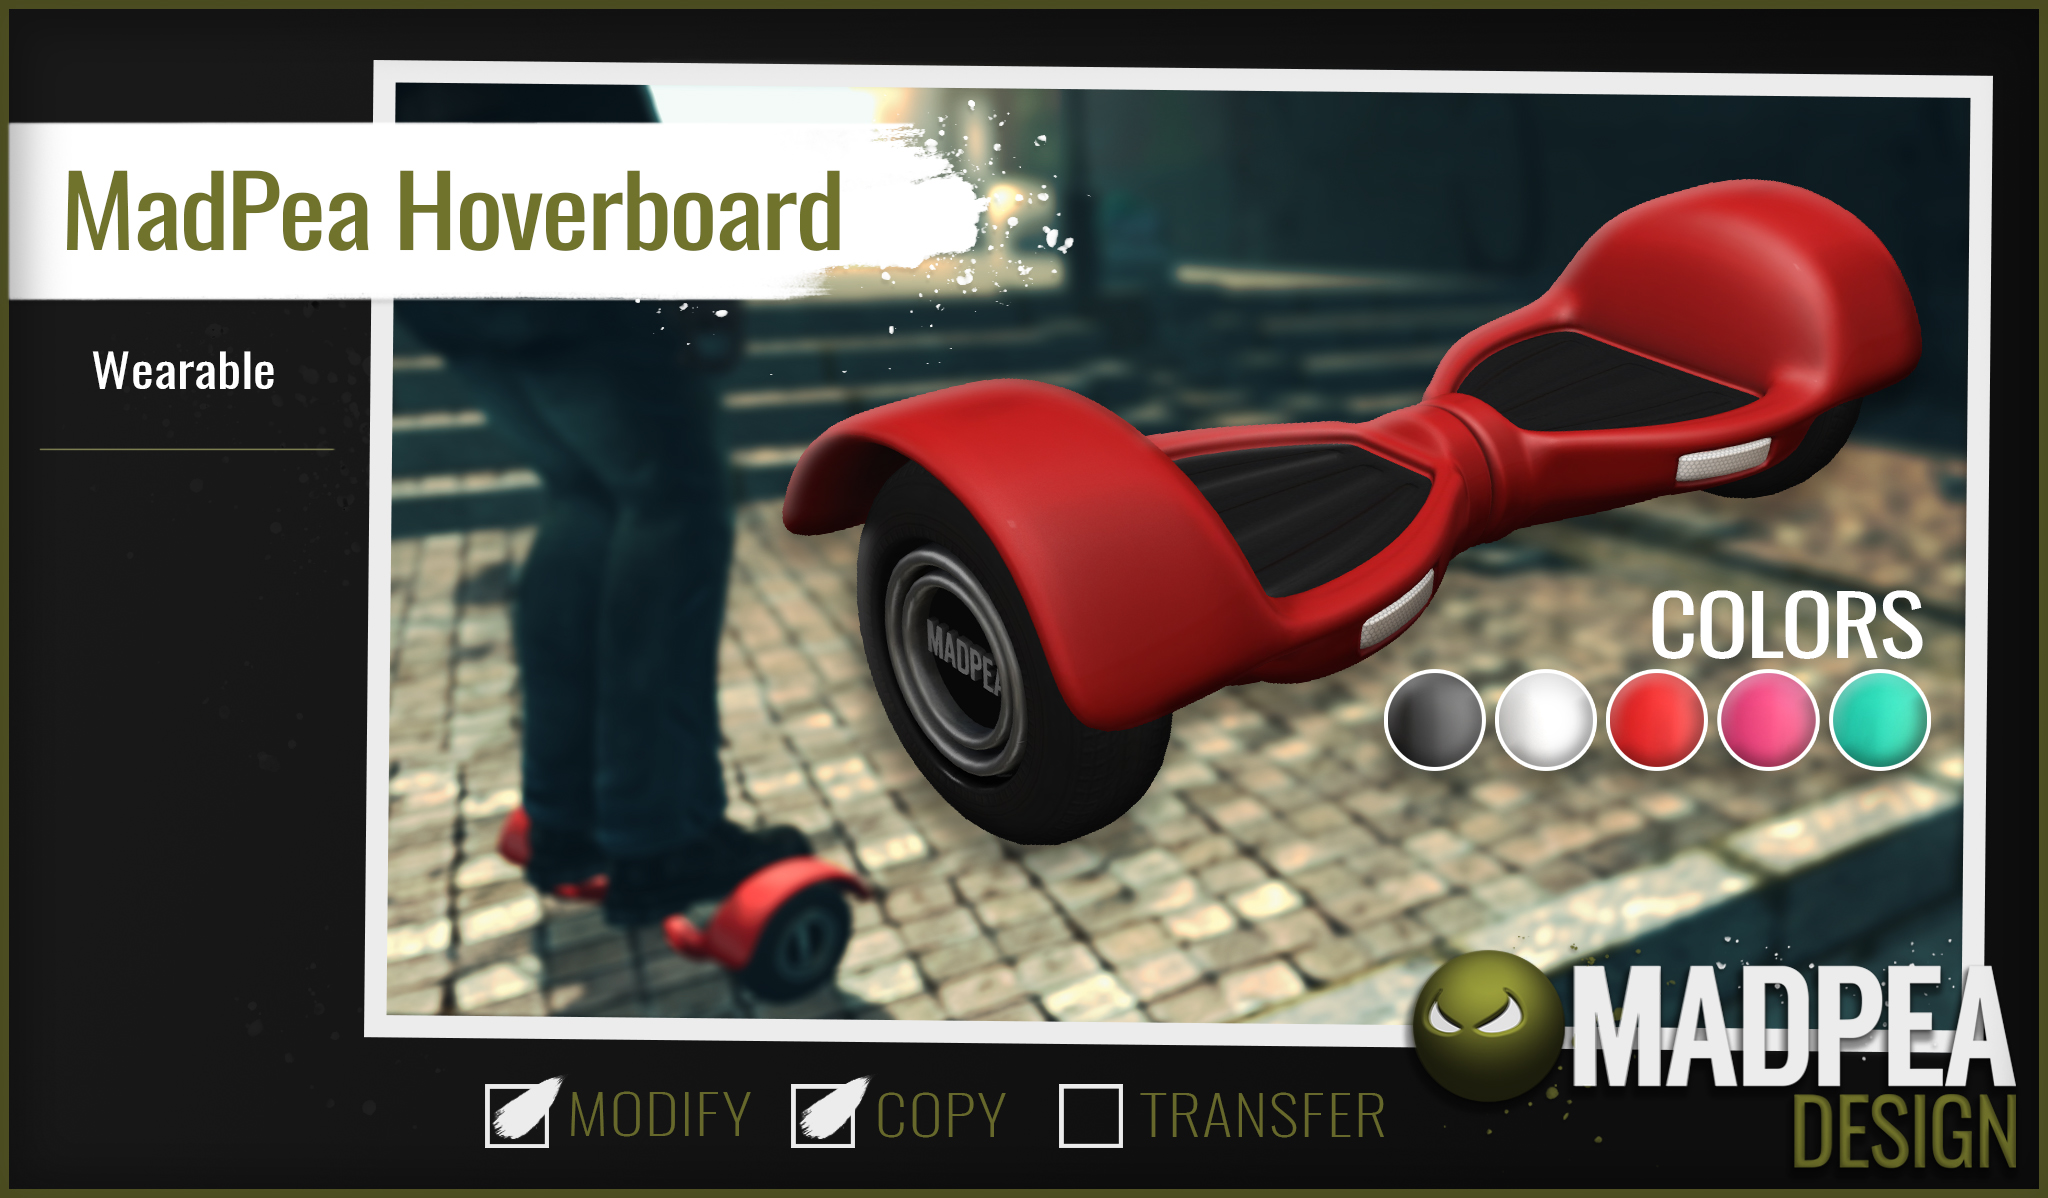 Introducing the MadPea Hoverboard!